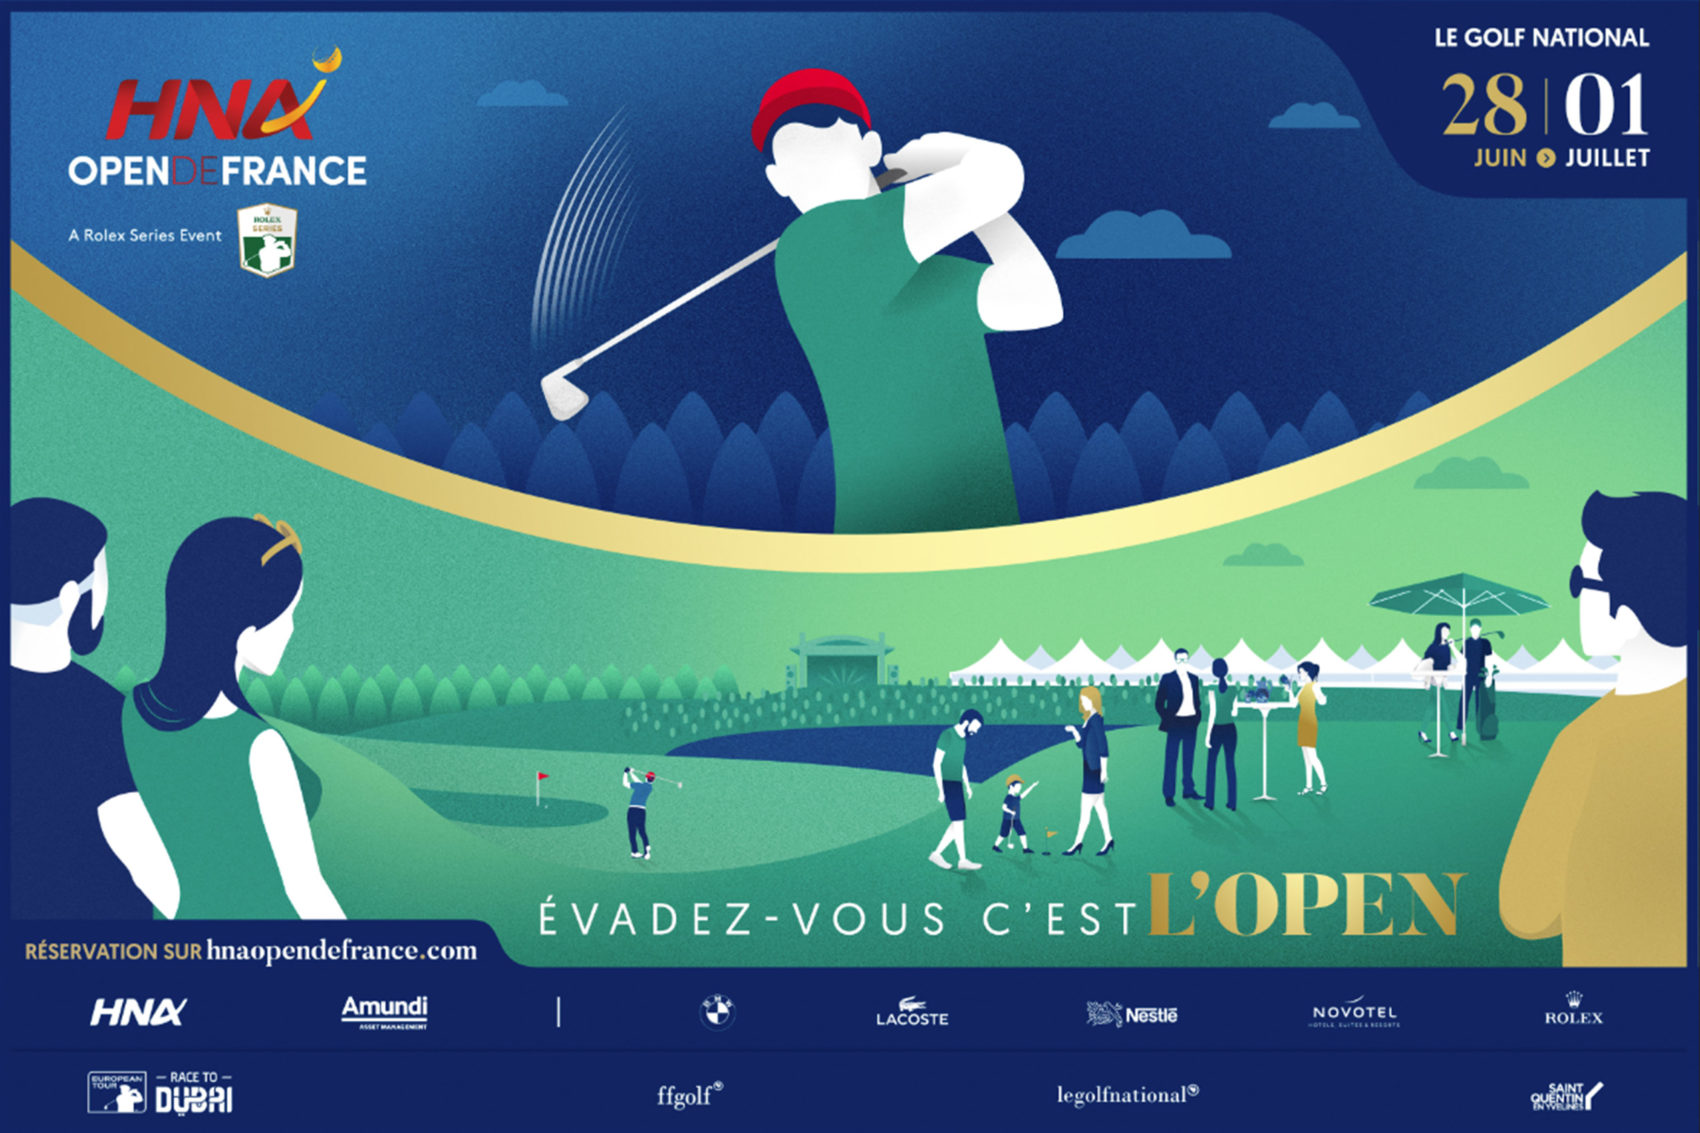 HNA_Open_de_France_RolexSeries_key_visual